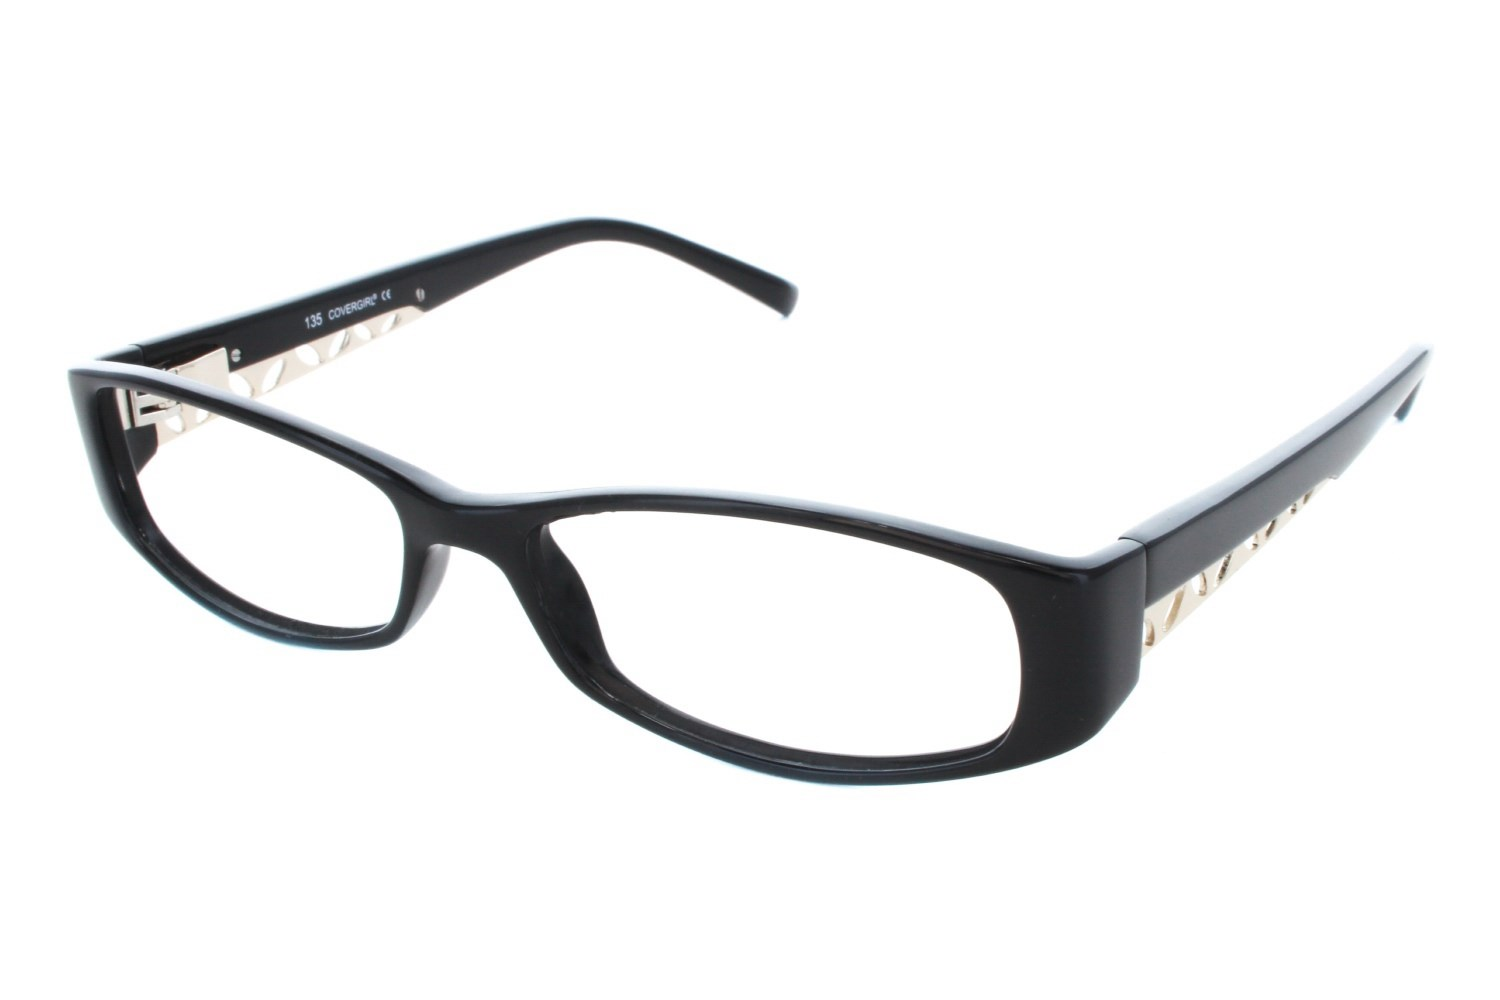 Covergirl CG0417 Prescription Eyeglasses Frames